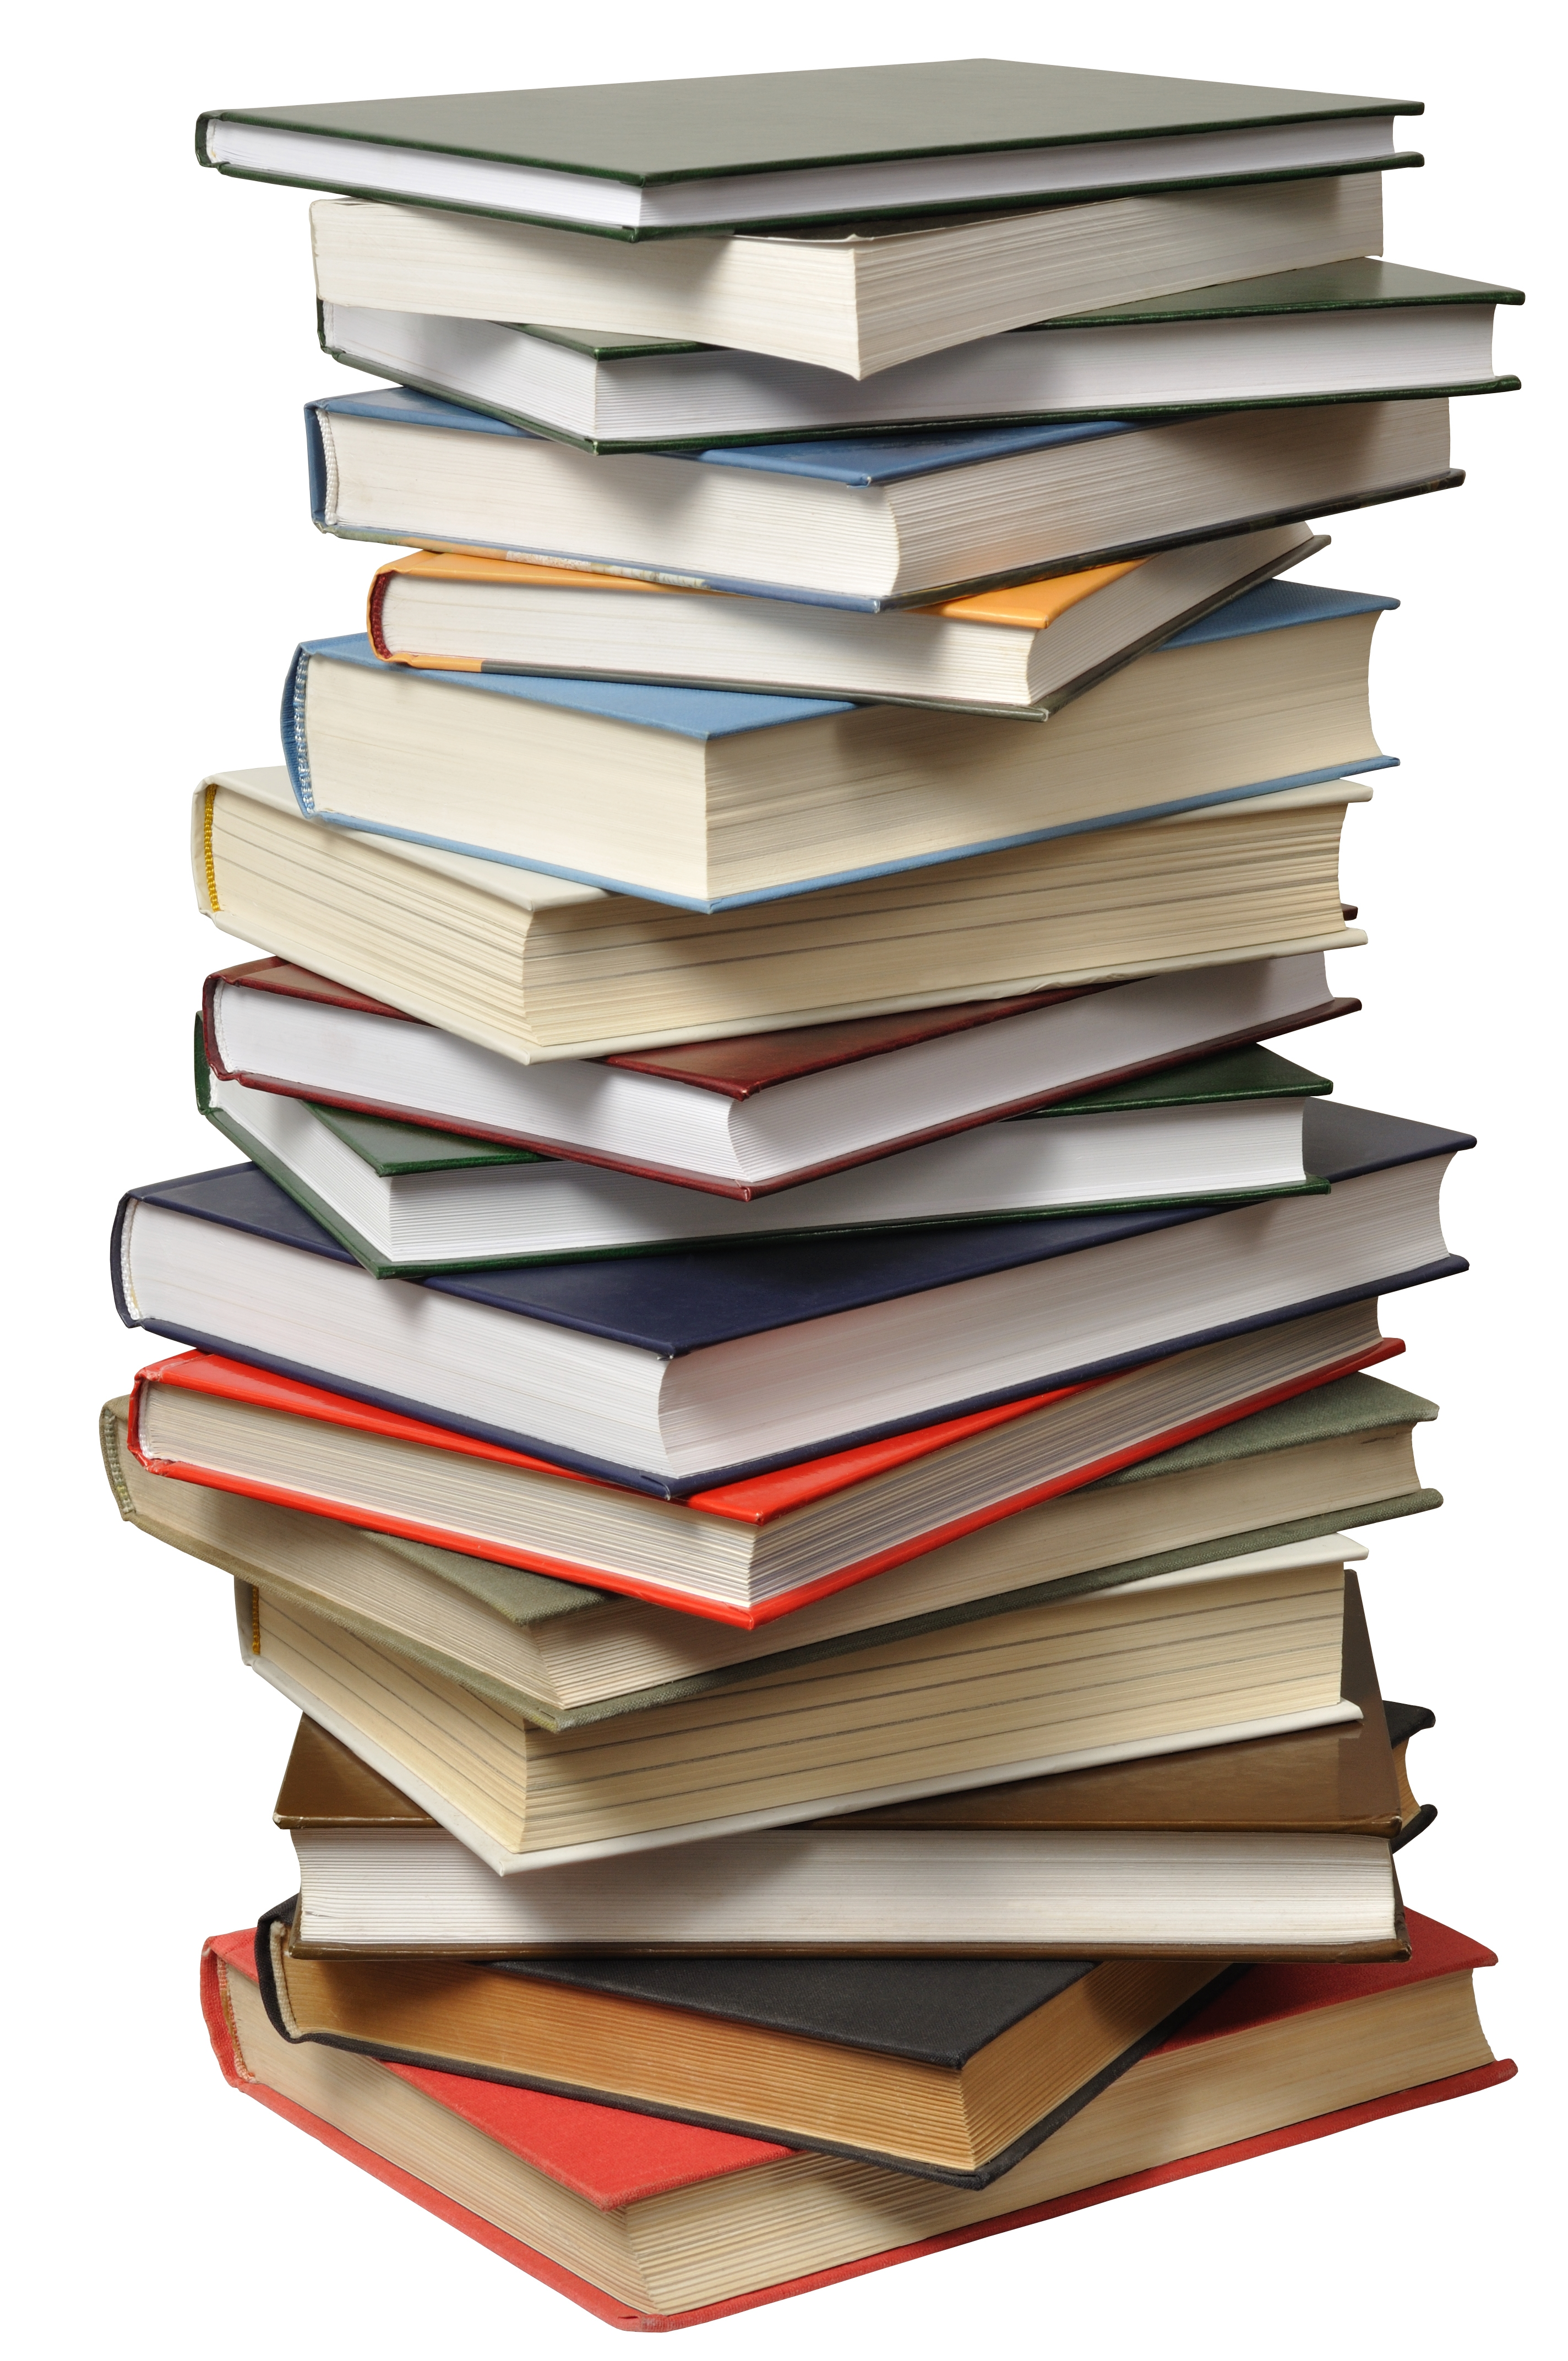 Book HD PNG - 119695